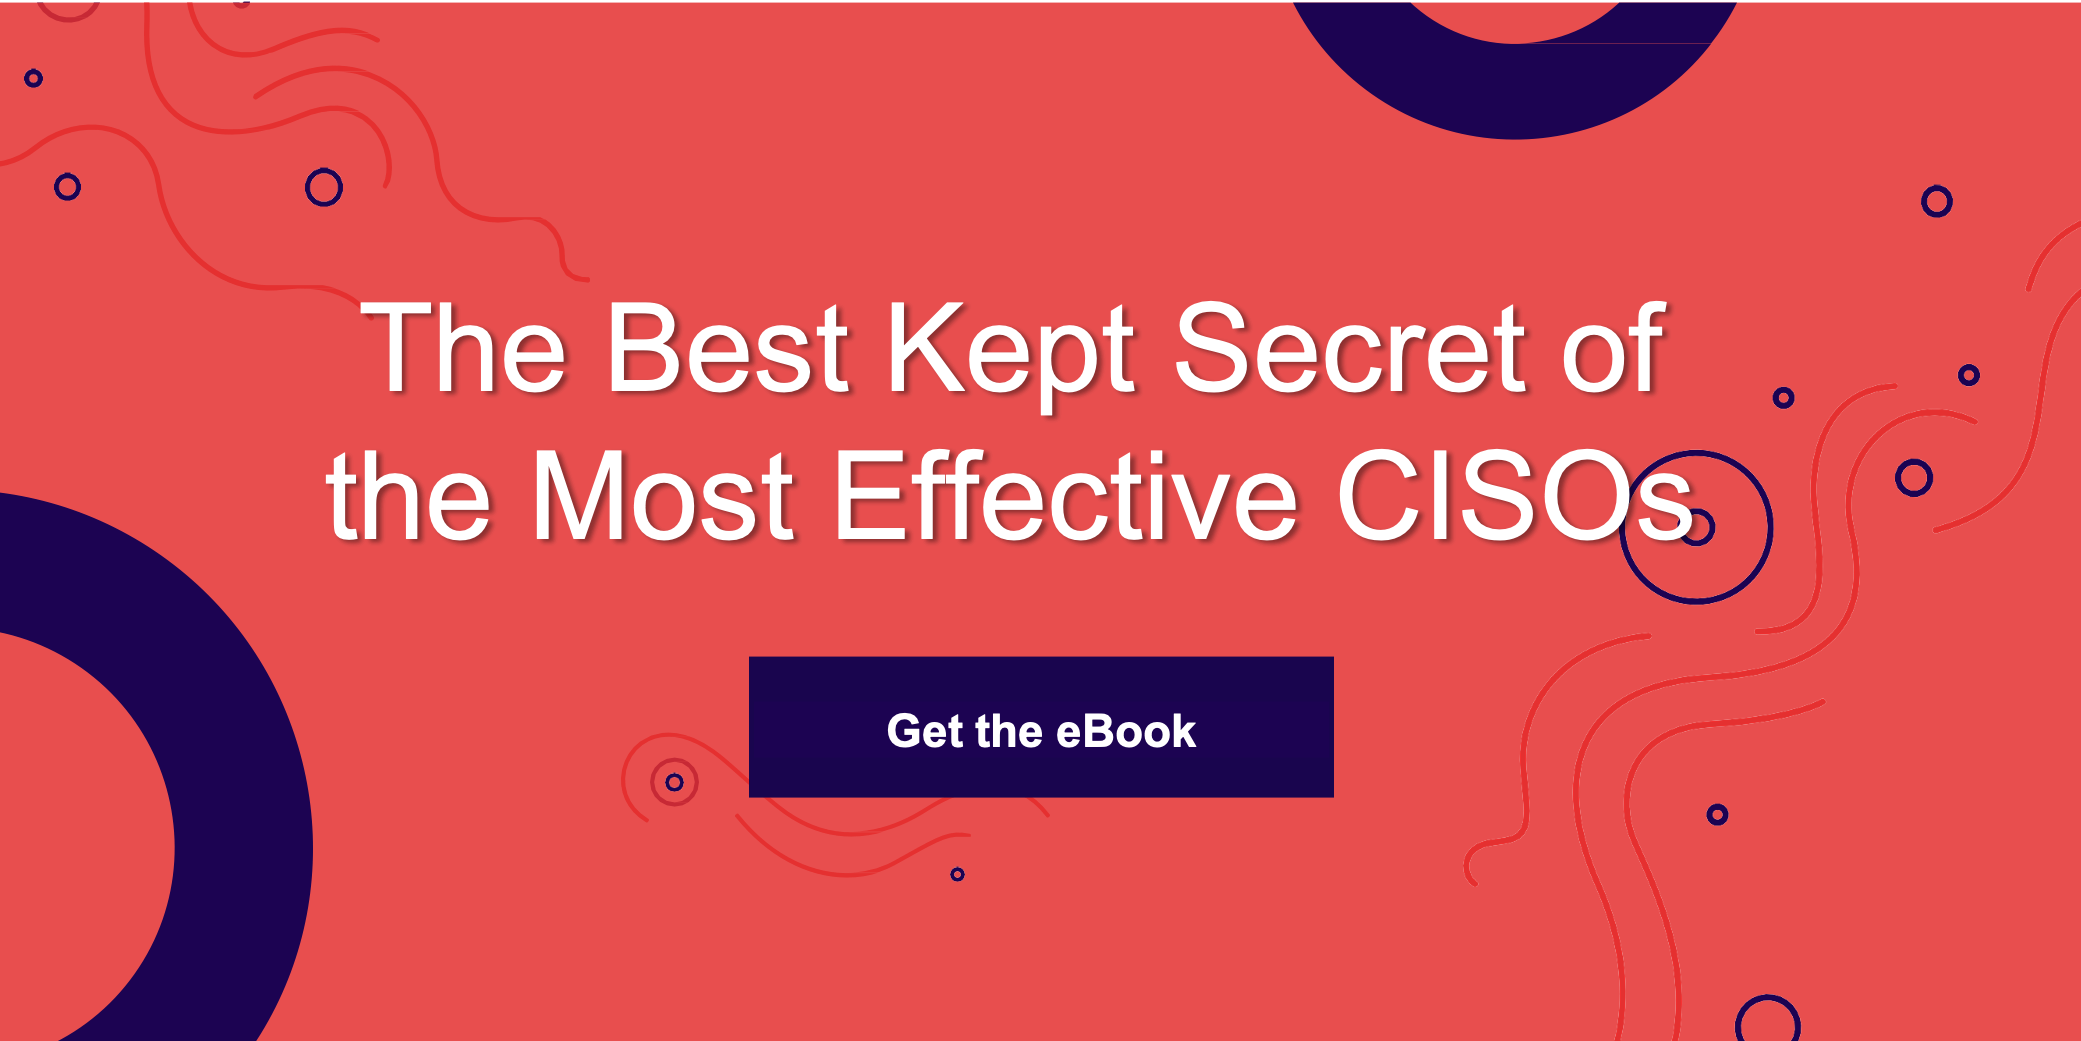 The Best Kept Secret of the Most Effective CISOs